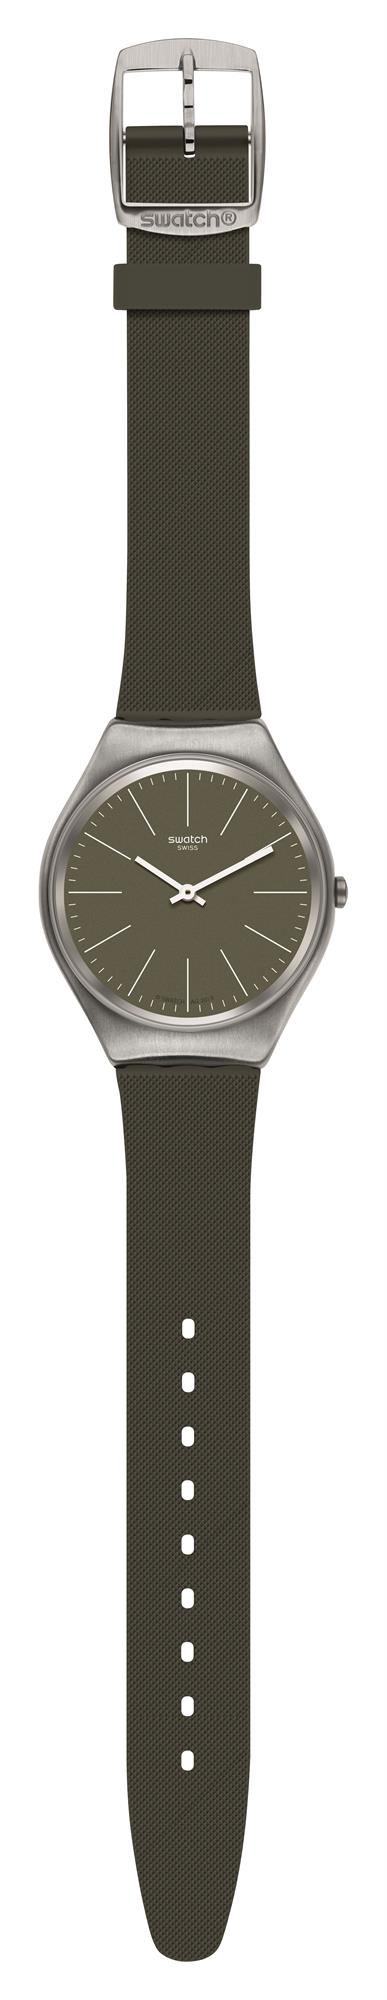 Swatch Skin Irony Skinnature Khaki Green Mens Watch SYXS116 38mmThisSwatch Skin Irony Skinnature Khaki Green Mens Watch SYXS116 38mm is a superb addition to the Skin Irony collection. White indexes and hands are complimented by a khaki green dial. The hands are powered by a quartz movement and protected by a stainless steel case. A green khaki silicone strap is then fastened using a standard buckle.This watch has a water resistance of 30 metres, making it suitable for light splashes.Key Features:Khaki Green DialKhaki Green Silicone StrapStandard BuckleQuartz Movement30m Water ResistantStainless Steel CaseThe Brand: SwatchSwatch watches are globally-renowned for their trademark combination of quality Swiss watchmaking, pioneering use of plastic cases and straps, and eye-catching designs. There is a Swatch watch to suit every age, taste and lifestyle, with this variety and sense of difference ensuring that Swatch watches remain some of the most popular and sought after currently manufactured.